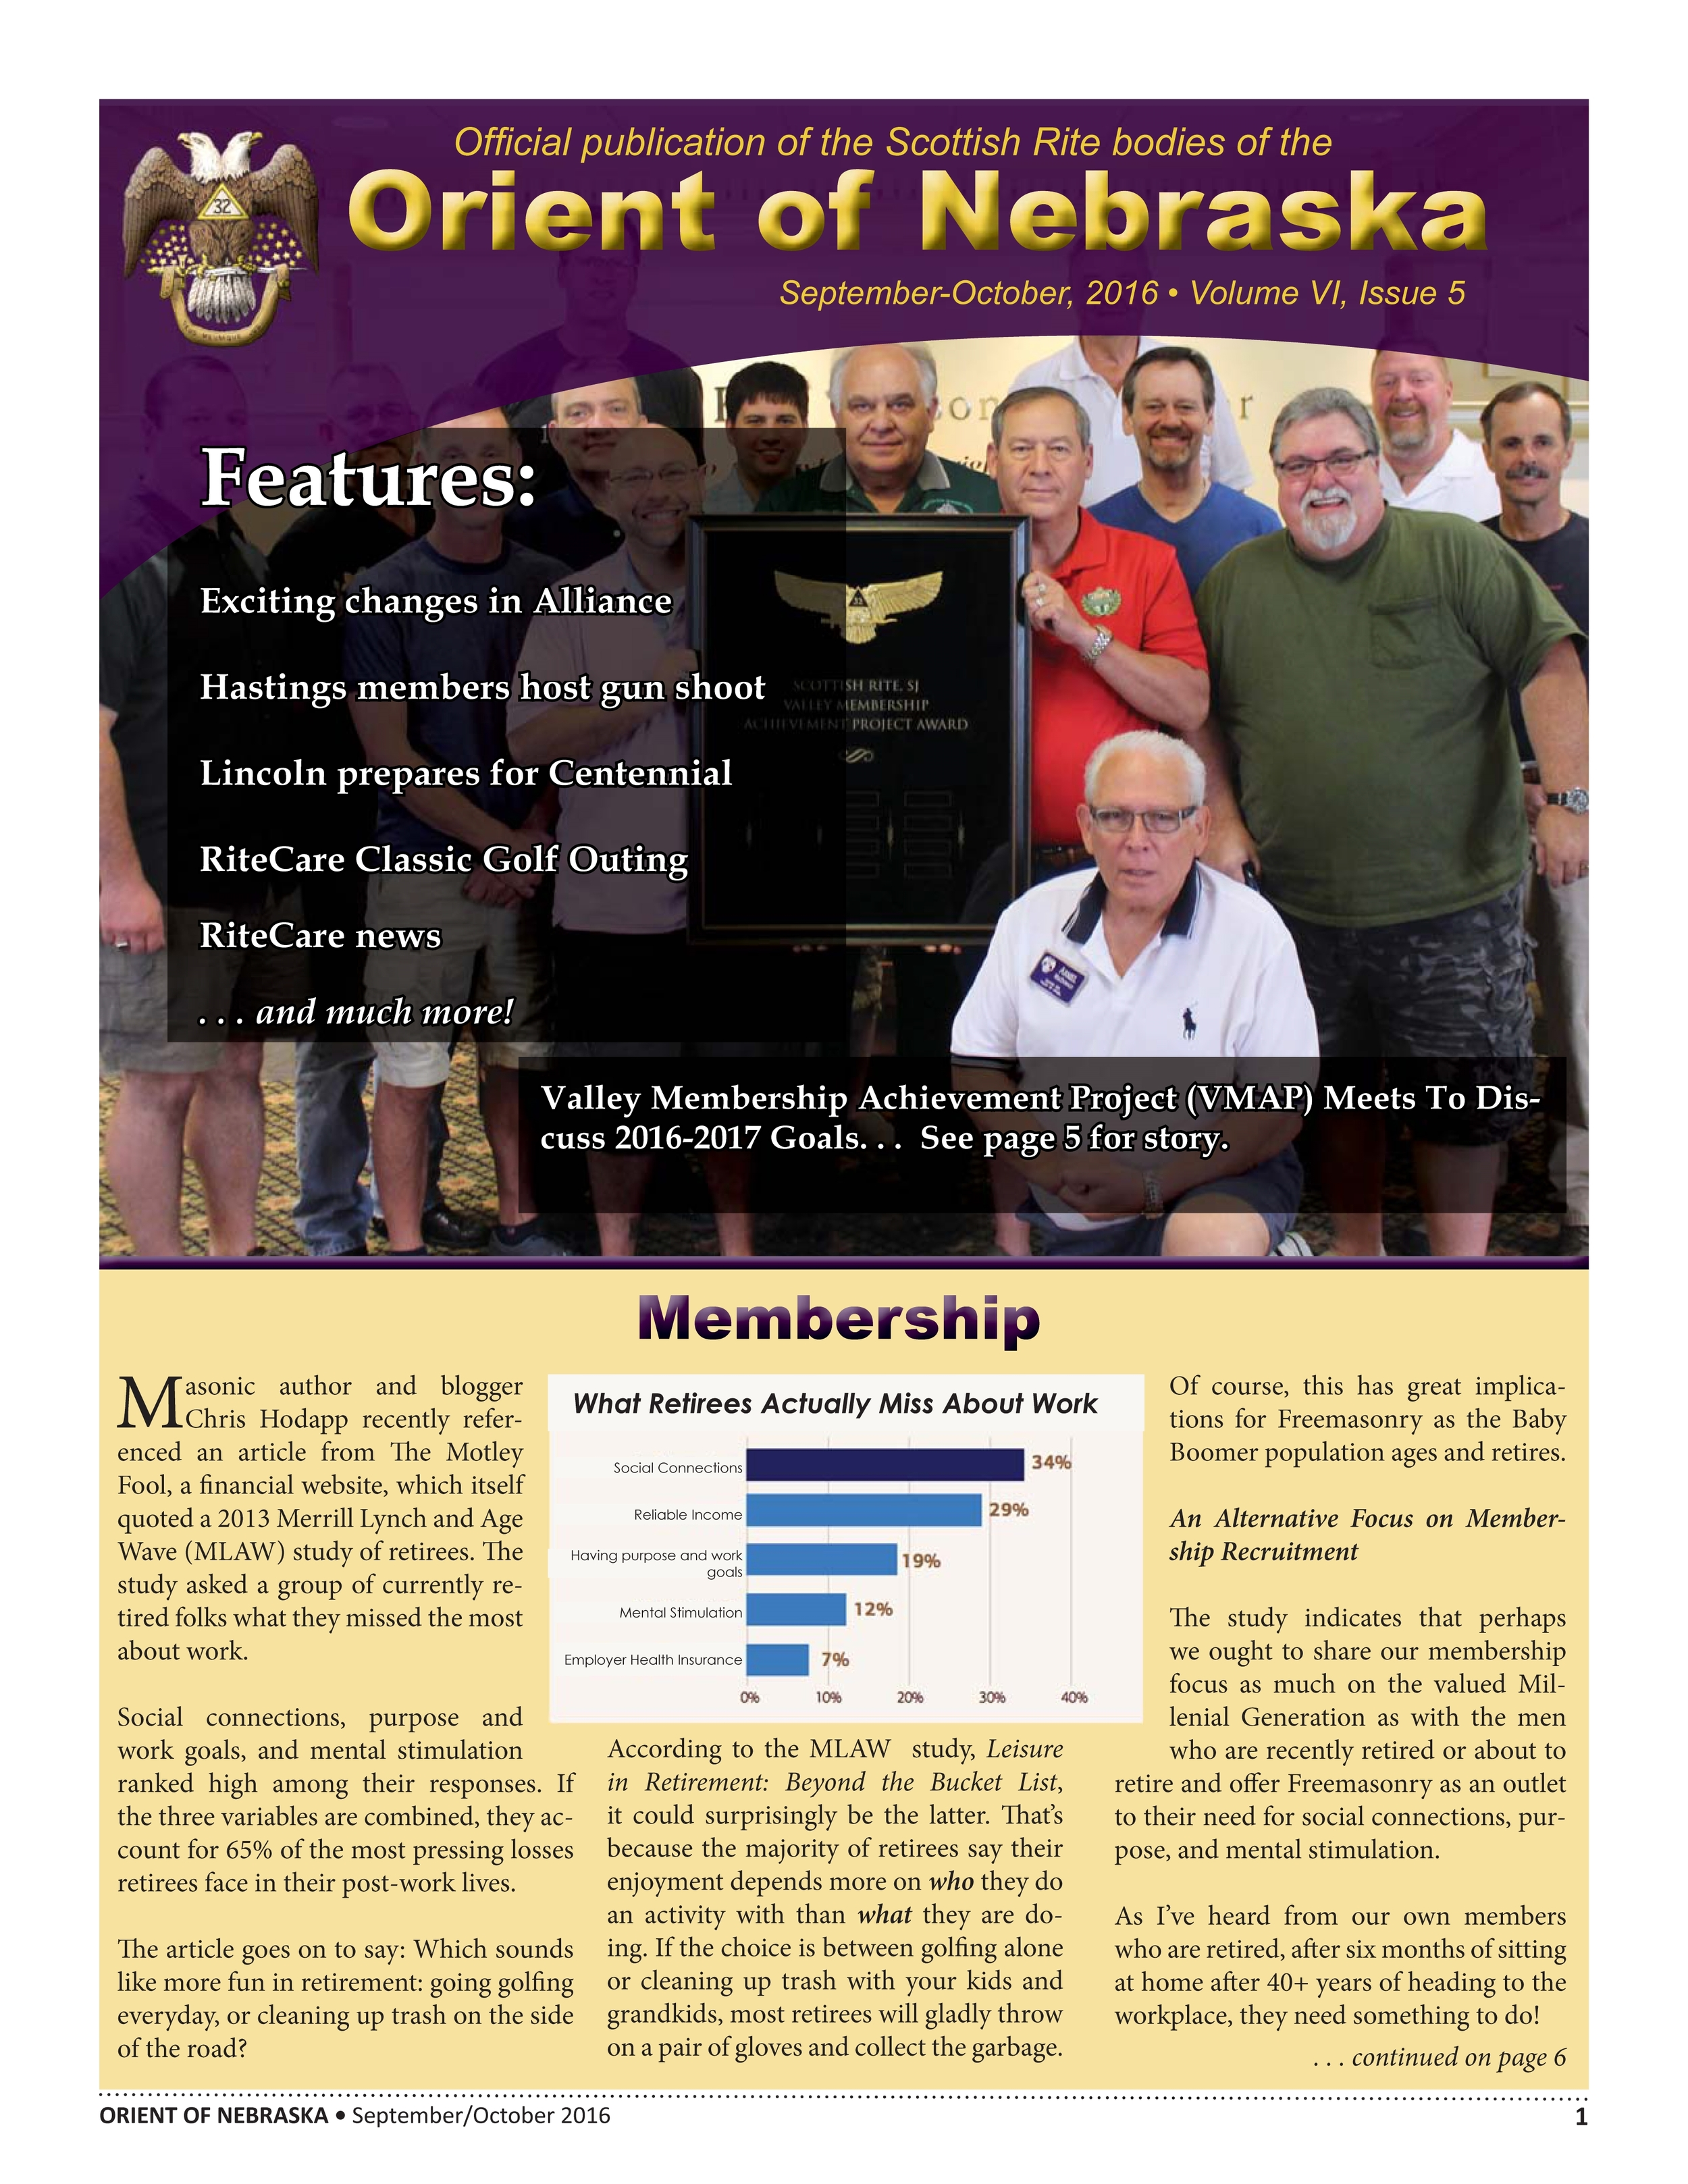 September-October 2016 Volume VI, Issue 5